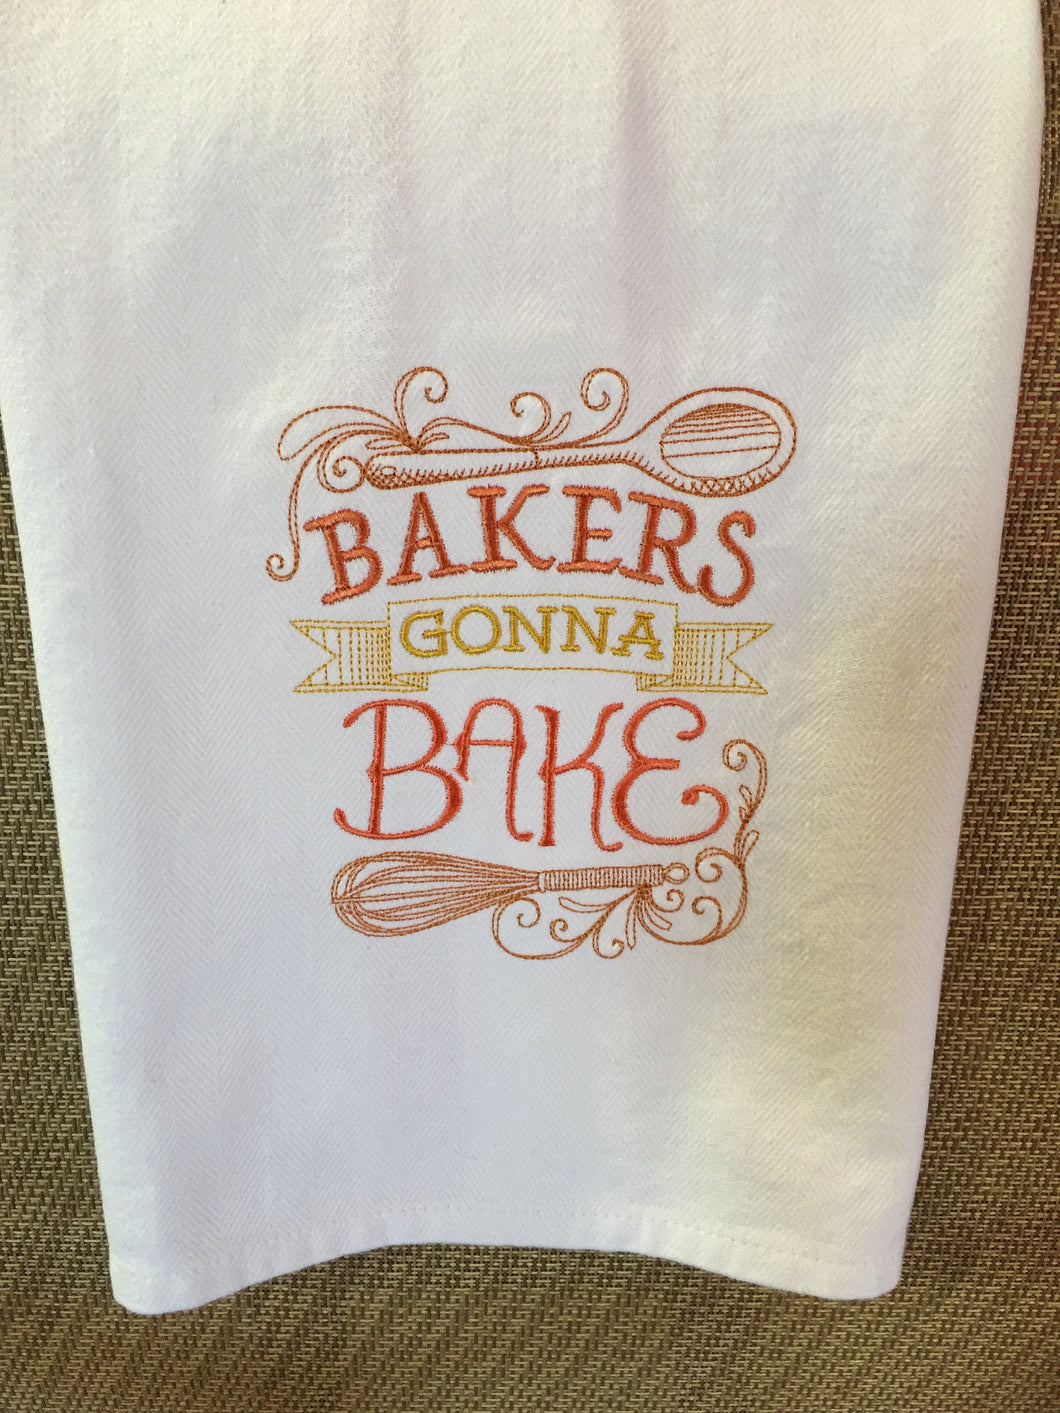 Bake Cooking Baker's Gonna Bake Cooking Hand Dish Kitchen Towel Decor Birthday Retirement Shower Gifts